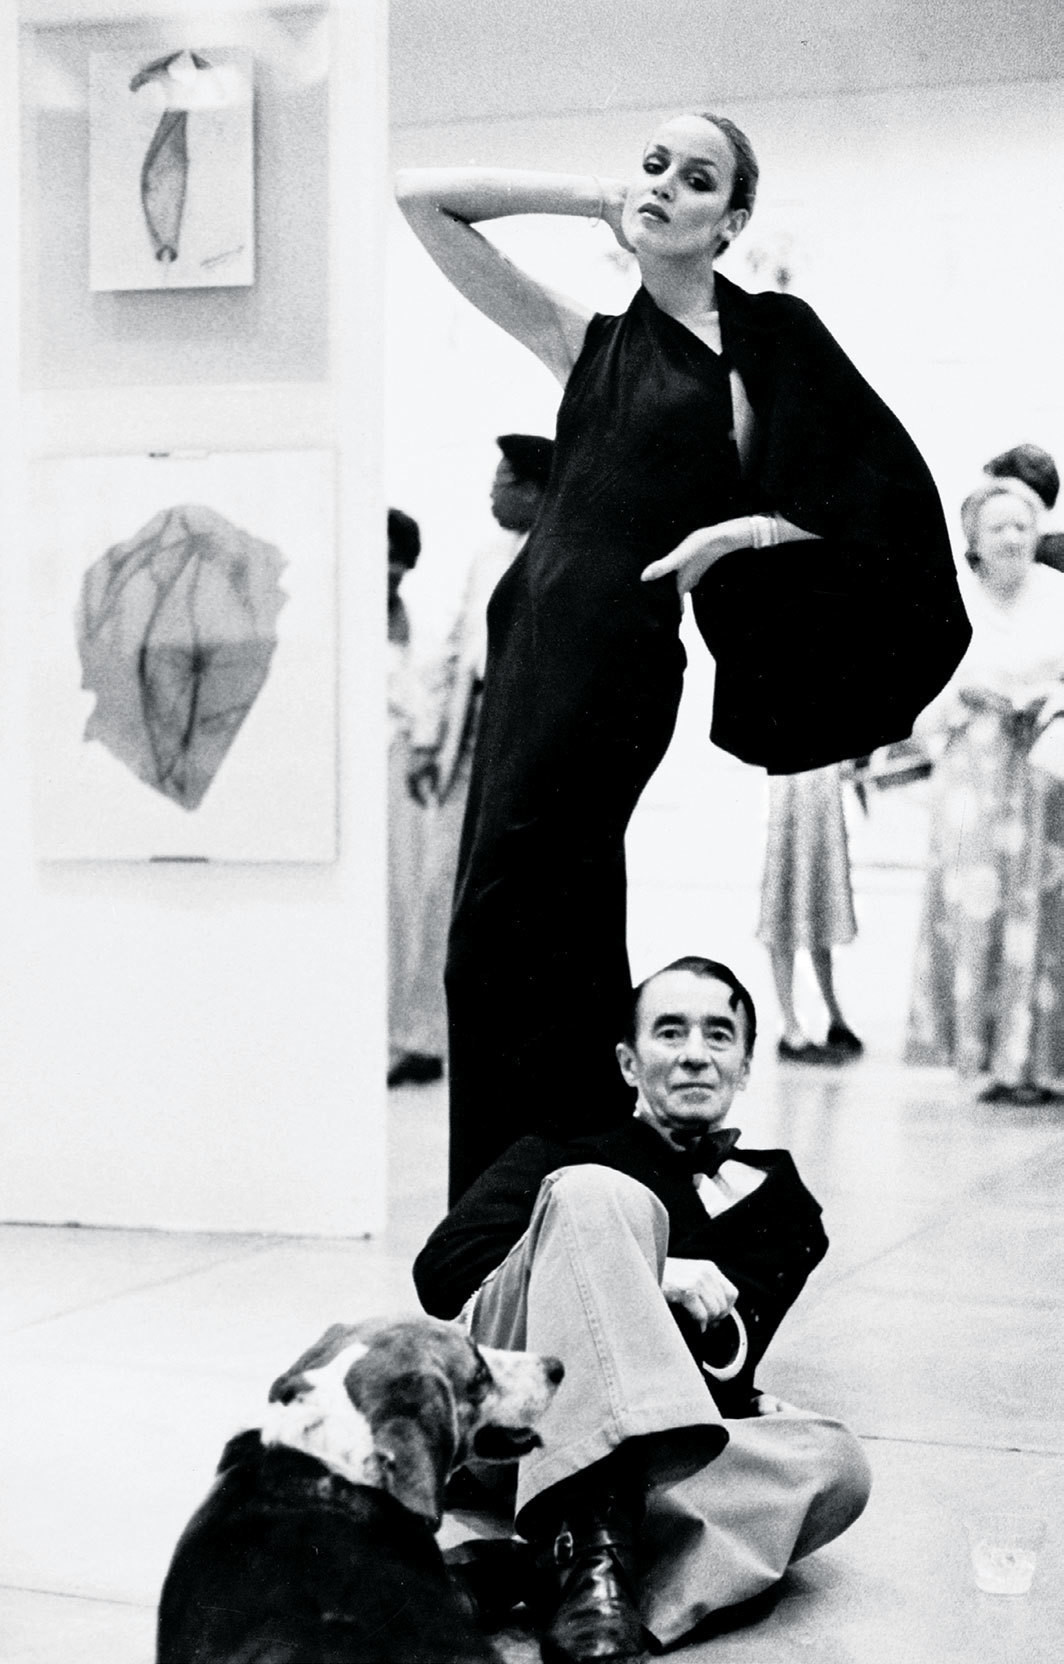 Charles James and Jerry Hall, Everson Museum, Syracuse, New York, 1975.